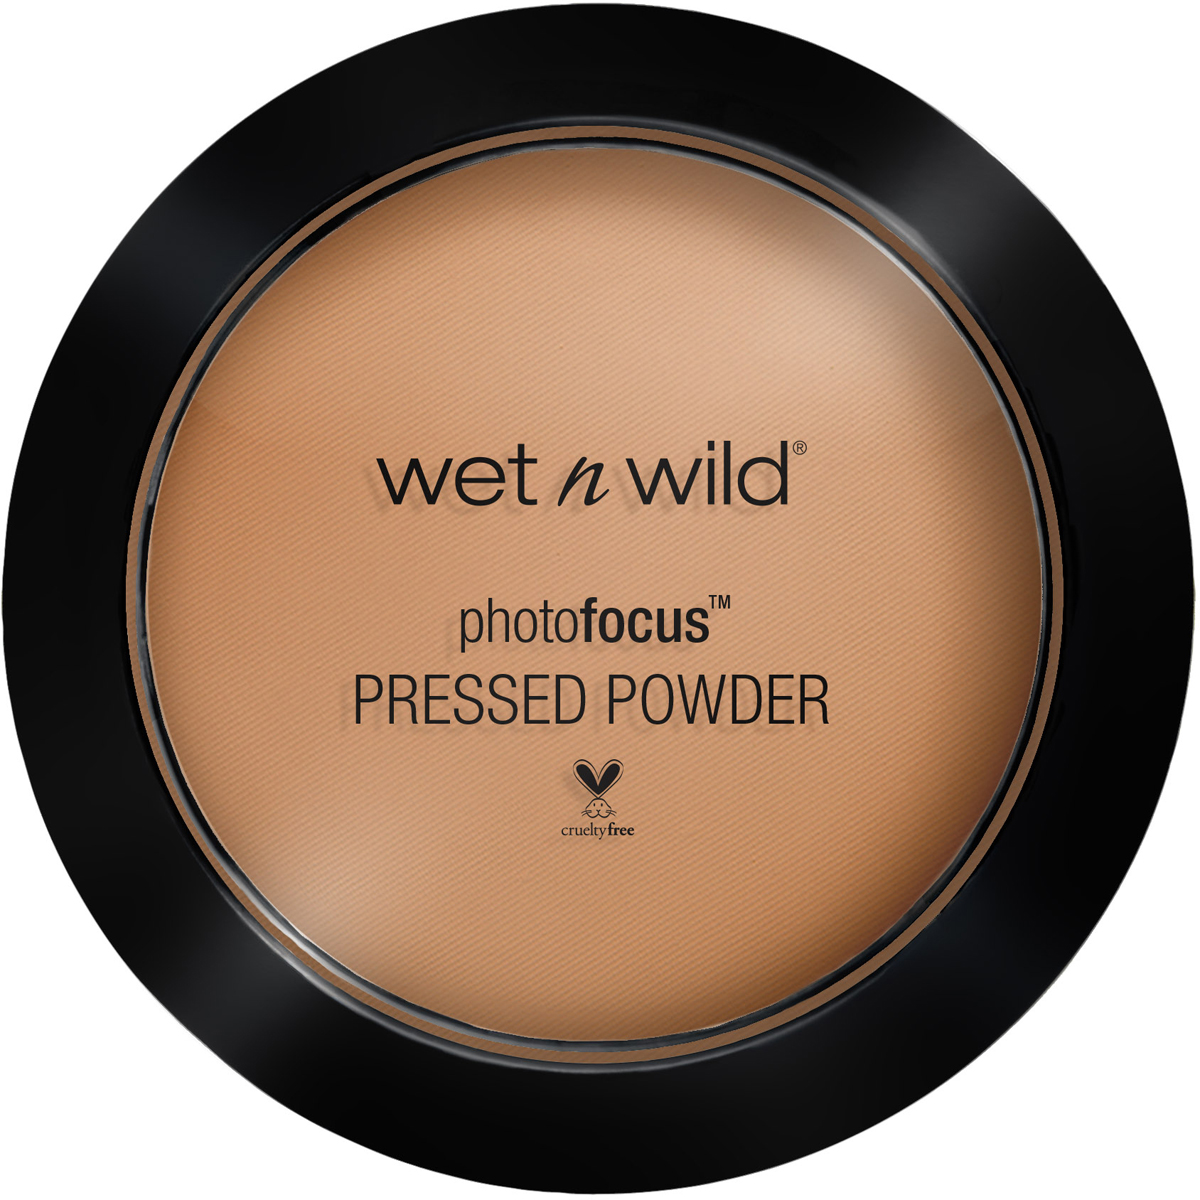 Wet n Wild Компактная пудра Photo Focus Pressed Powder, тон Golden Tan, 7,5 г кукла bjd supia roda bjd sd doll soom luts volks toy fl